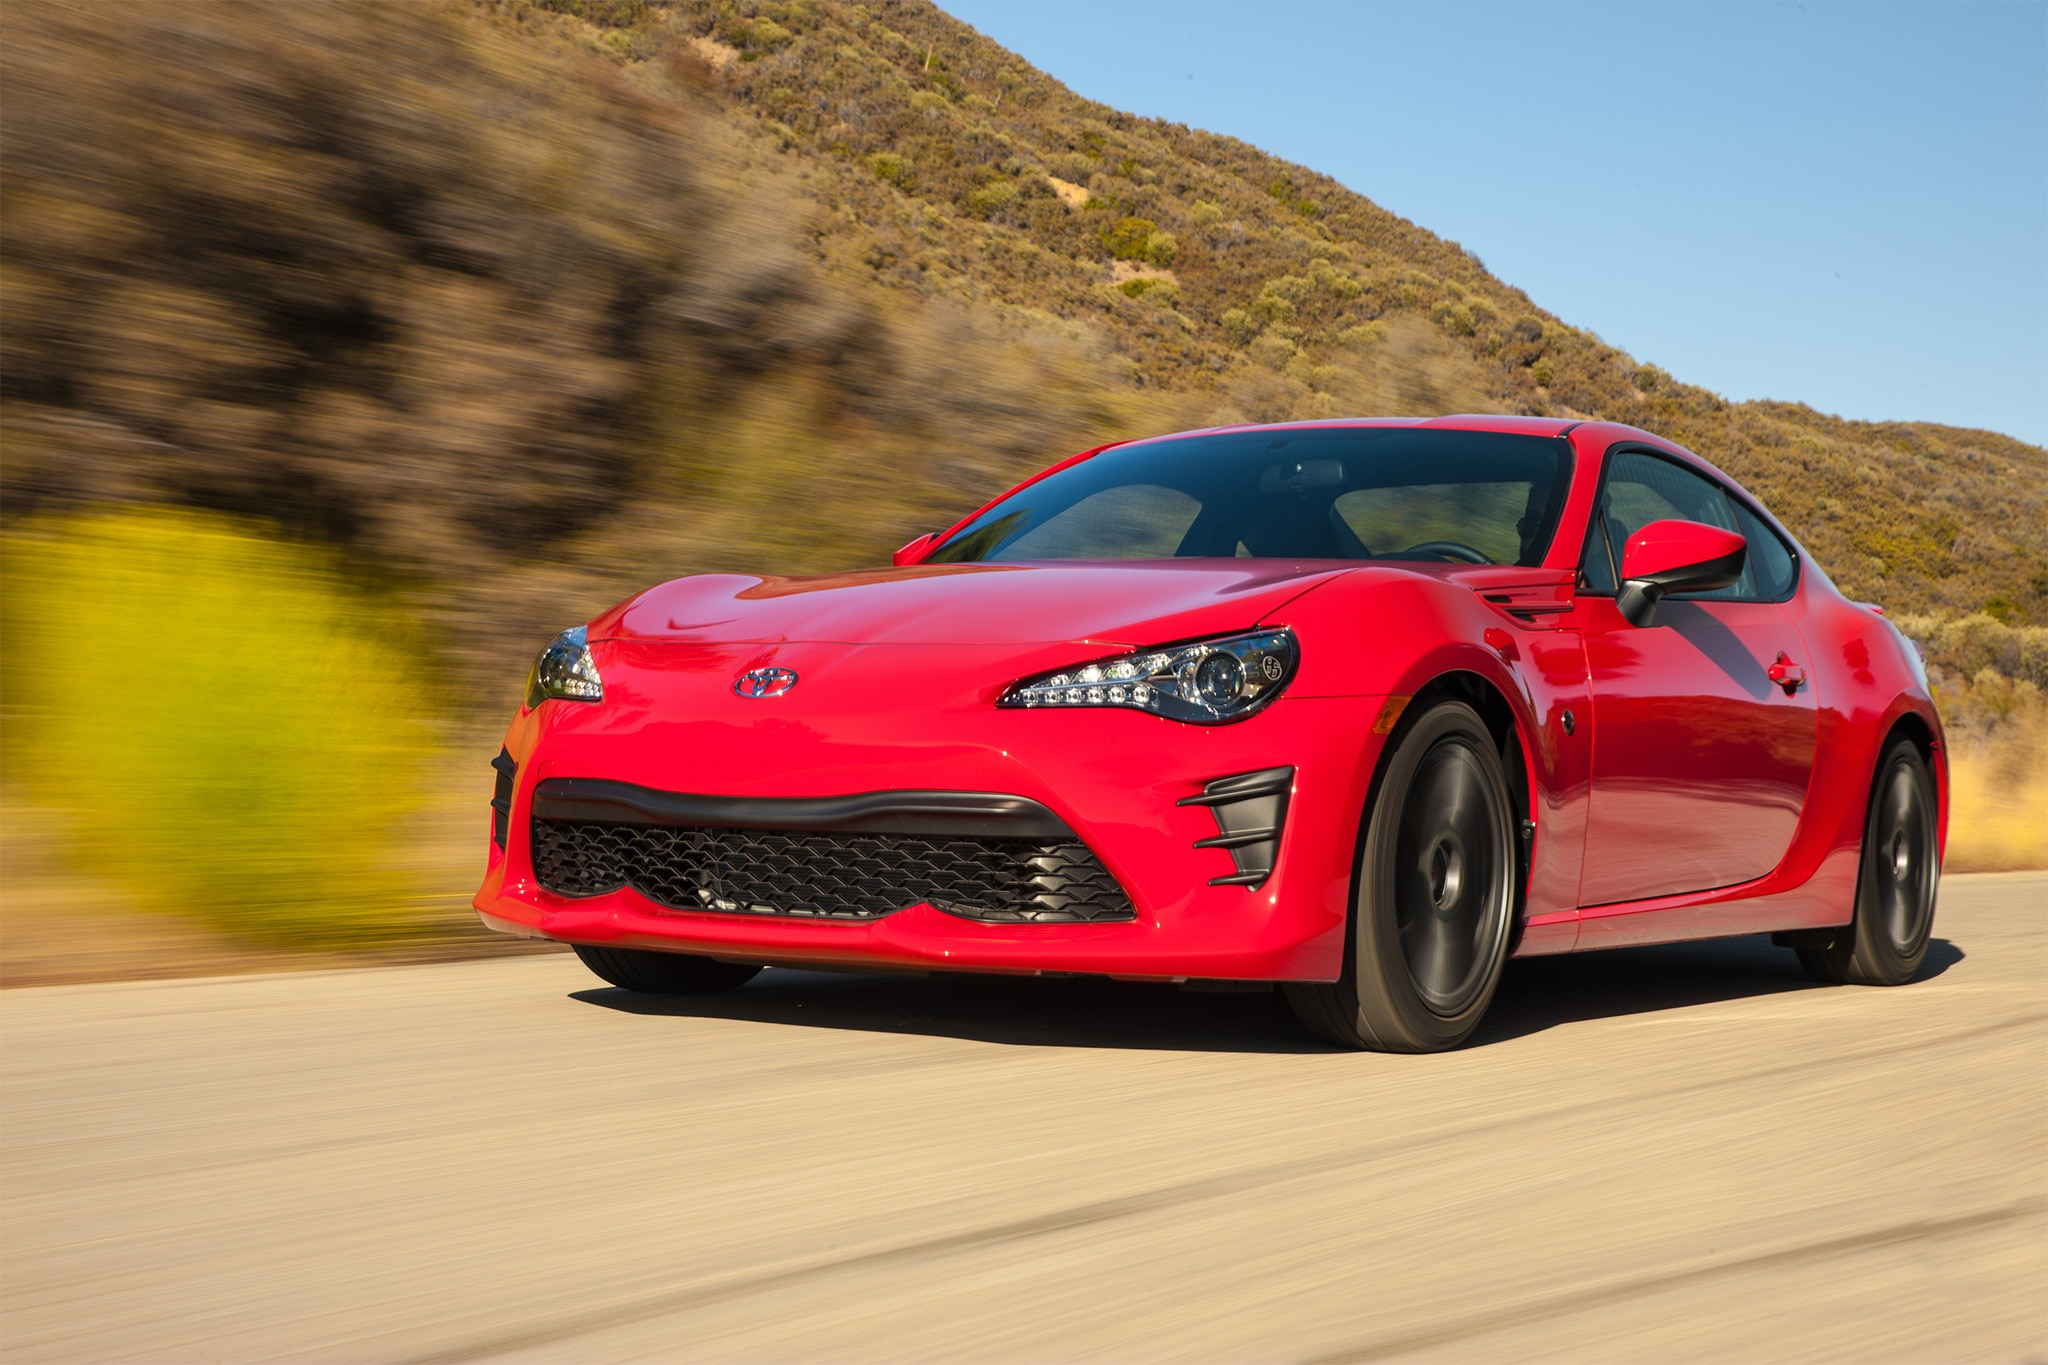 2017 Toyota 86 Will Focus Less On Aftermarket Than Scion FR-S